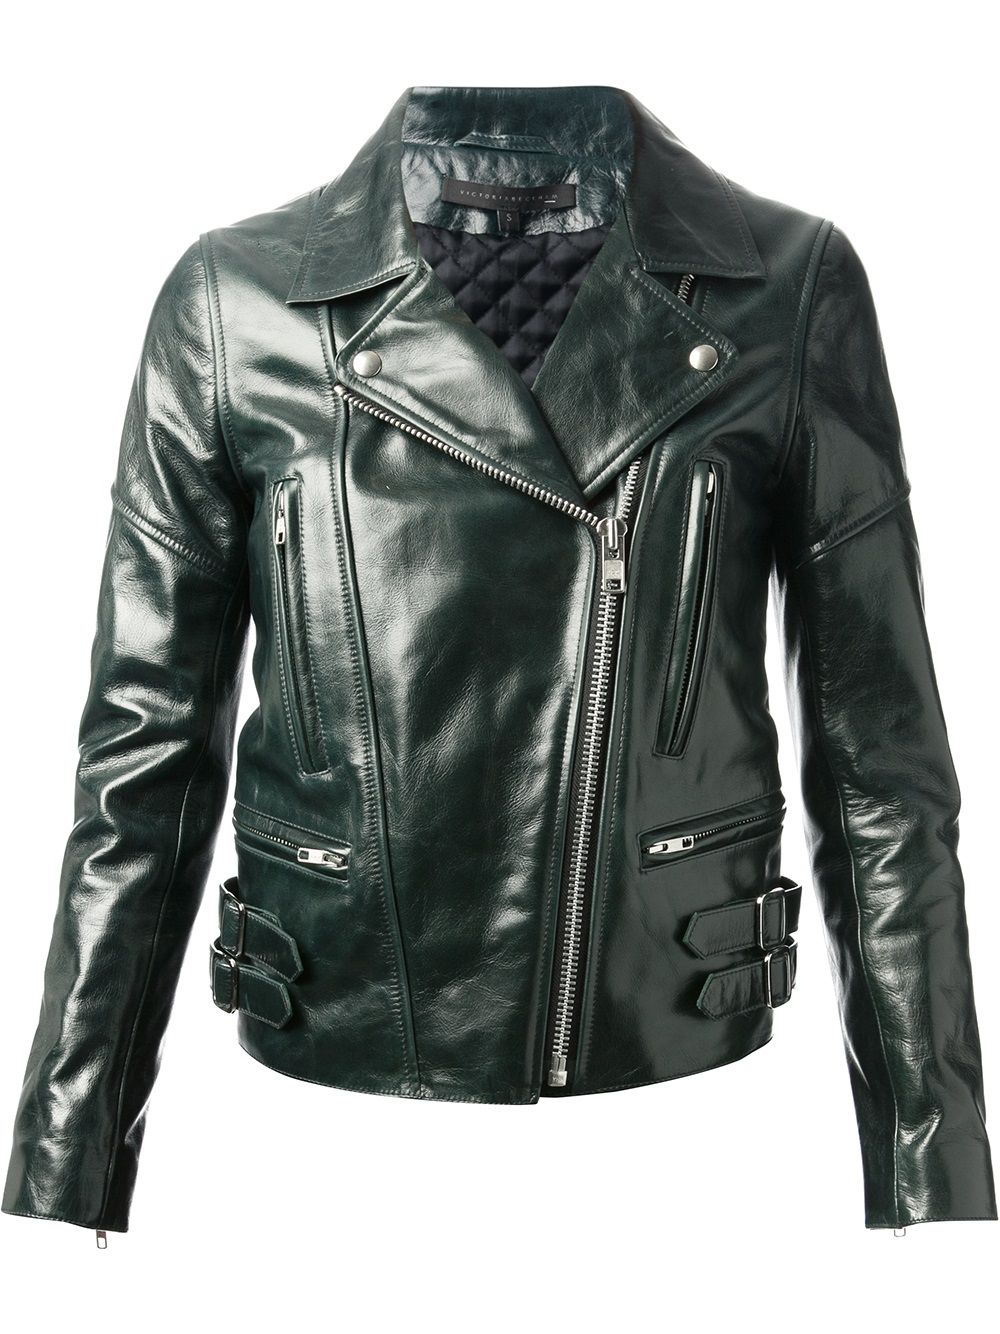 Leather jacket victoria - Gallery